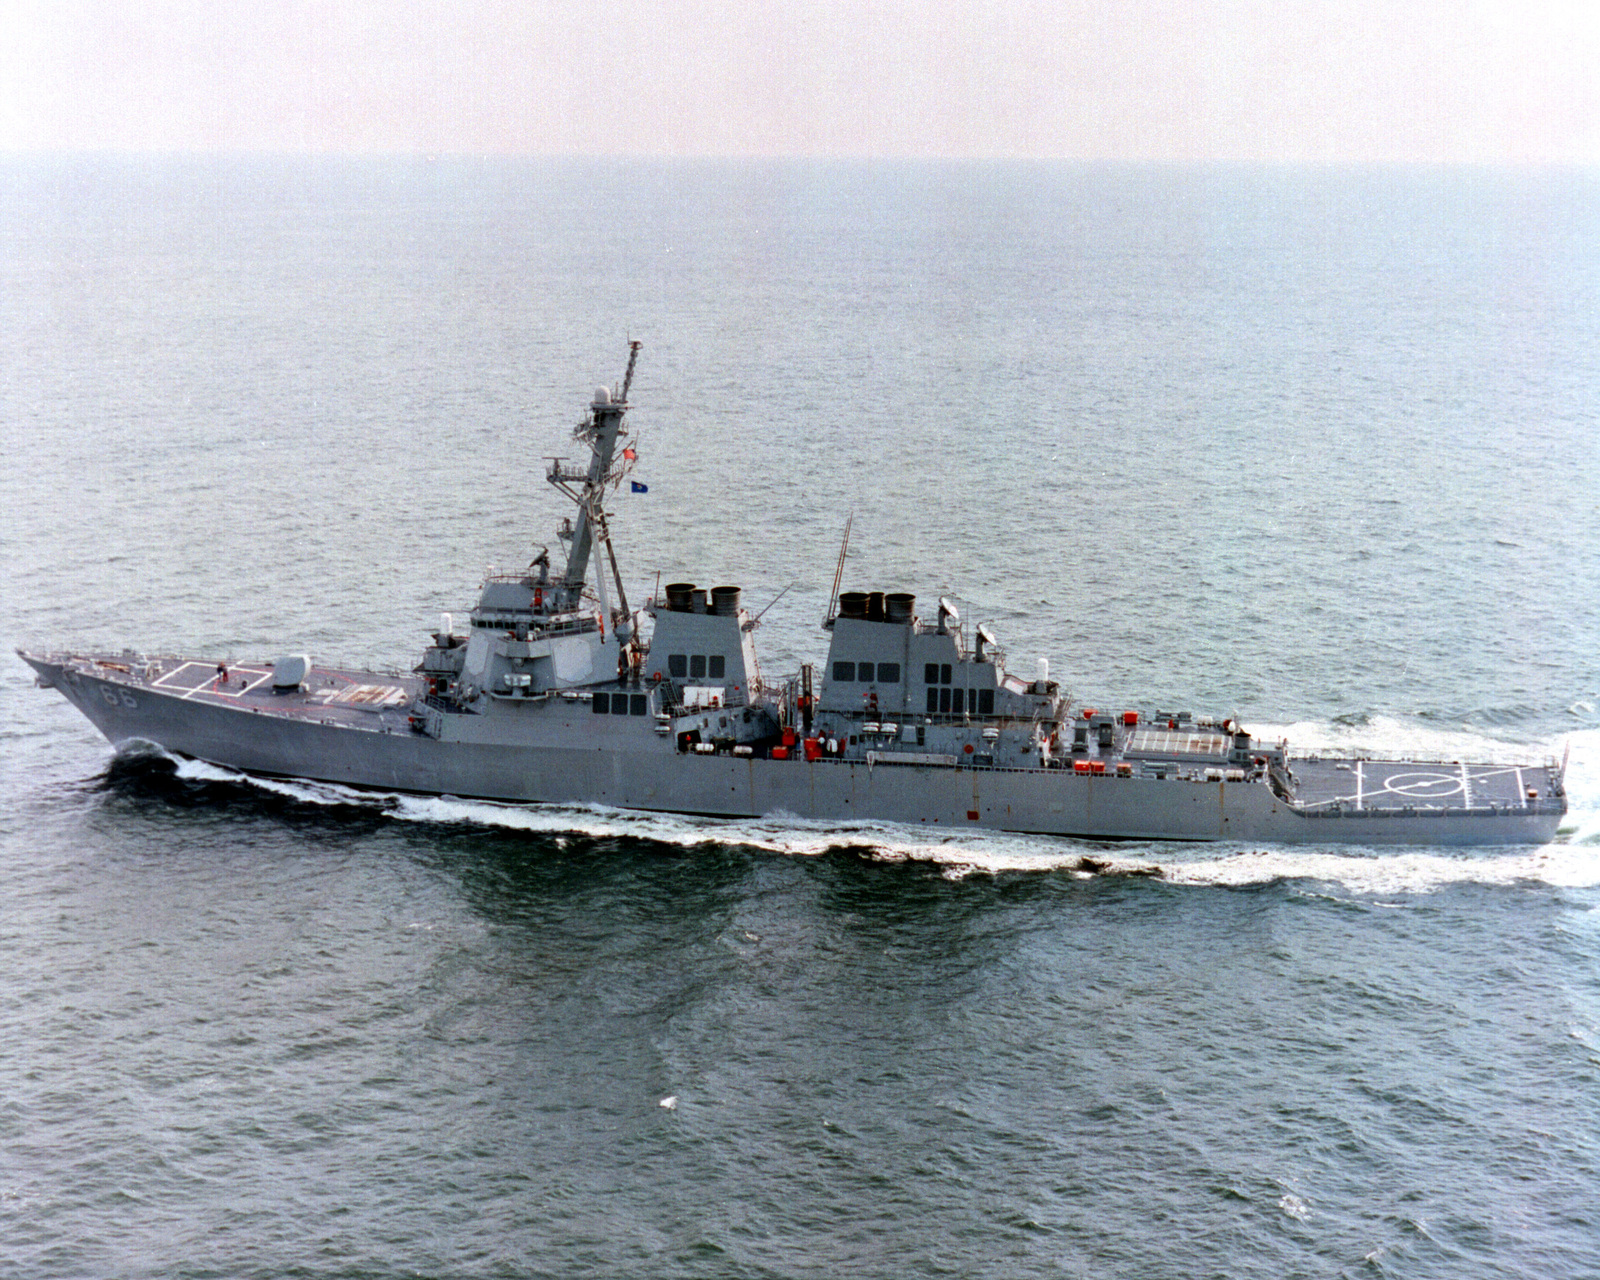 Aerial port beam view of the guided missile destroyer USS GONZALES (DDG 66) underway during builder's sea trials